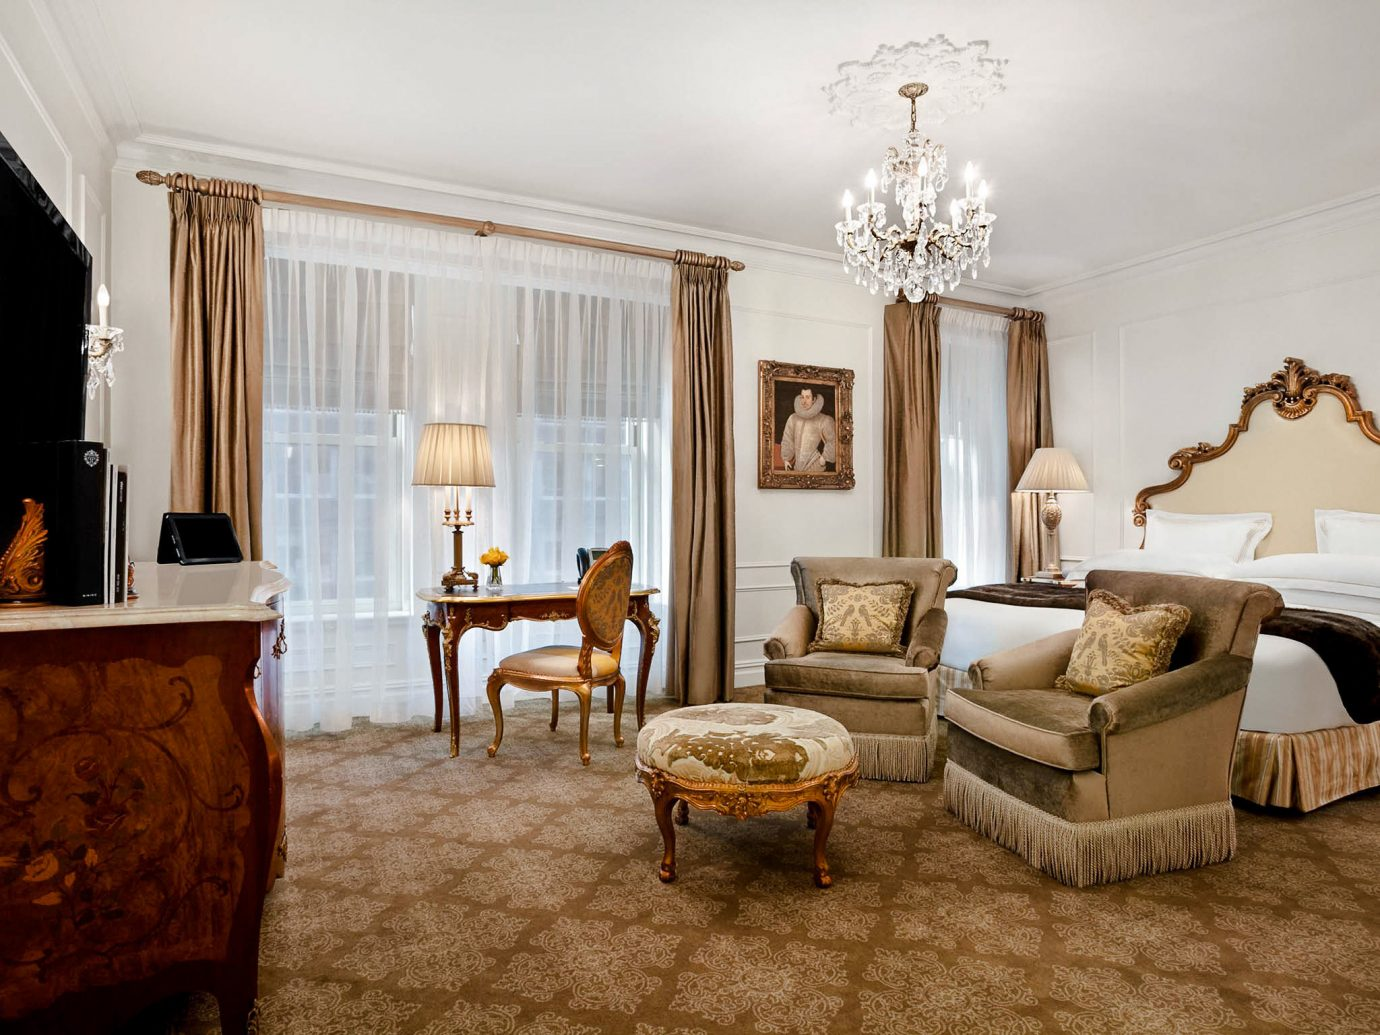 Bedroom at The Plaza in New York City